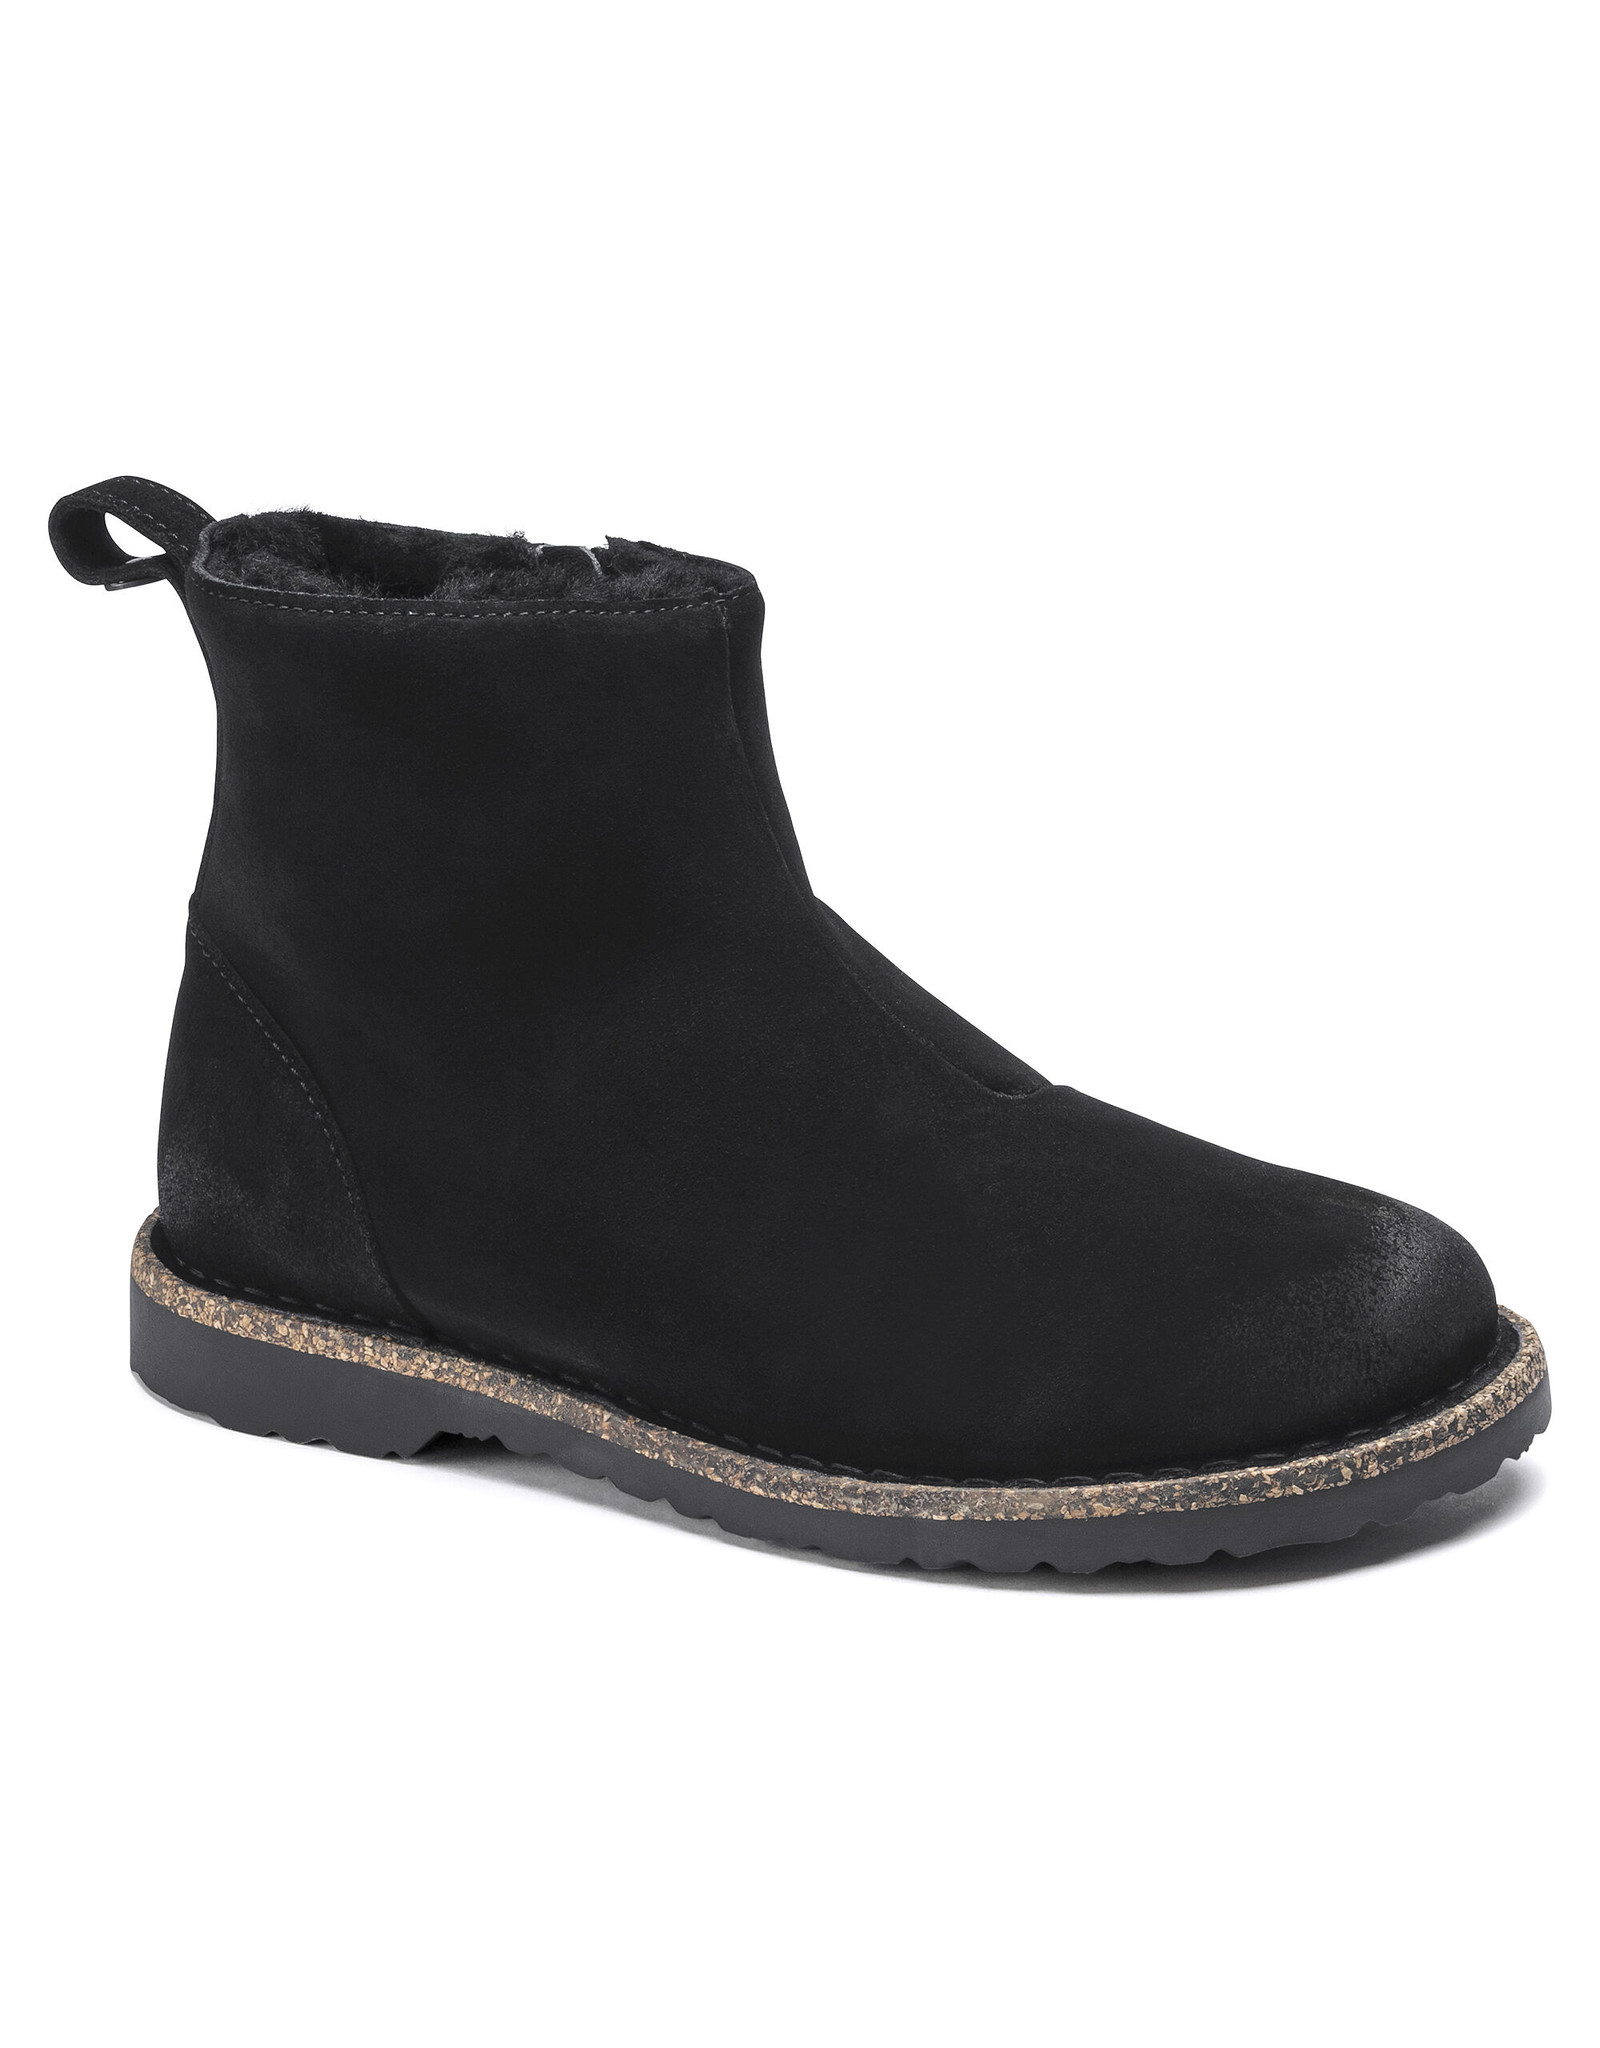 BIRKENSTOCK MELROSE SHEARLING SUEDE LEATHER-BLACK